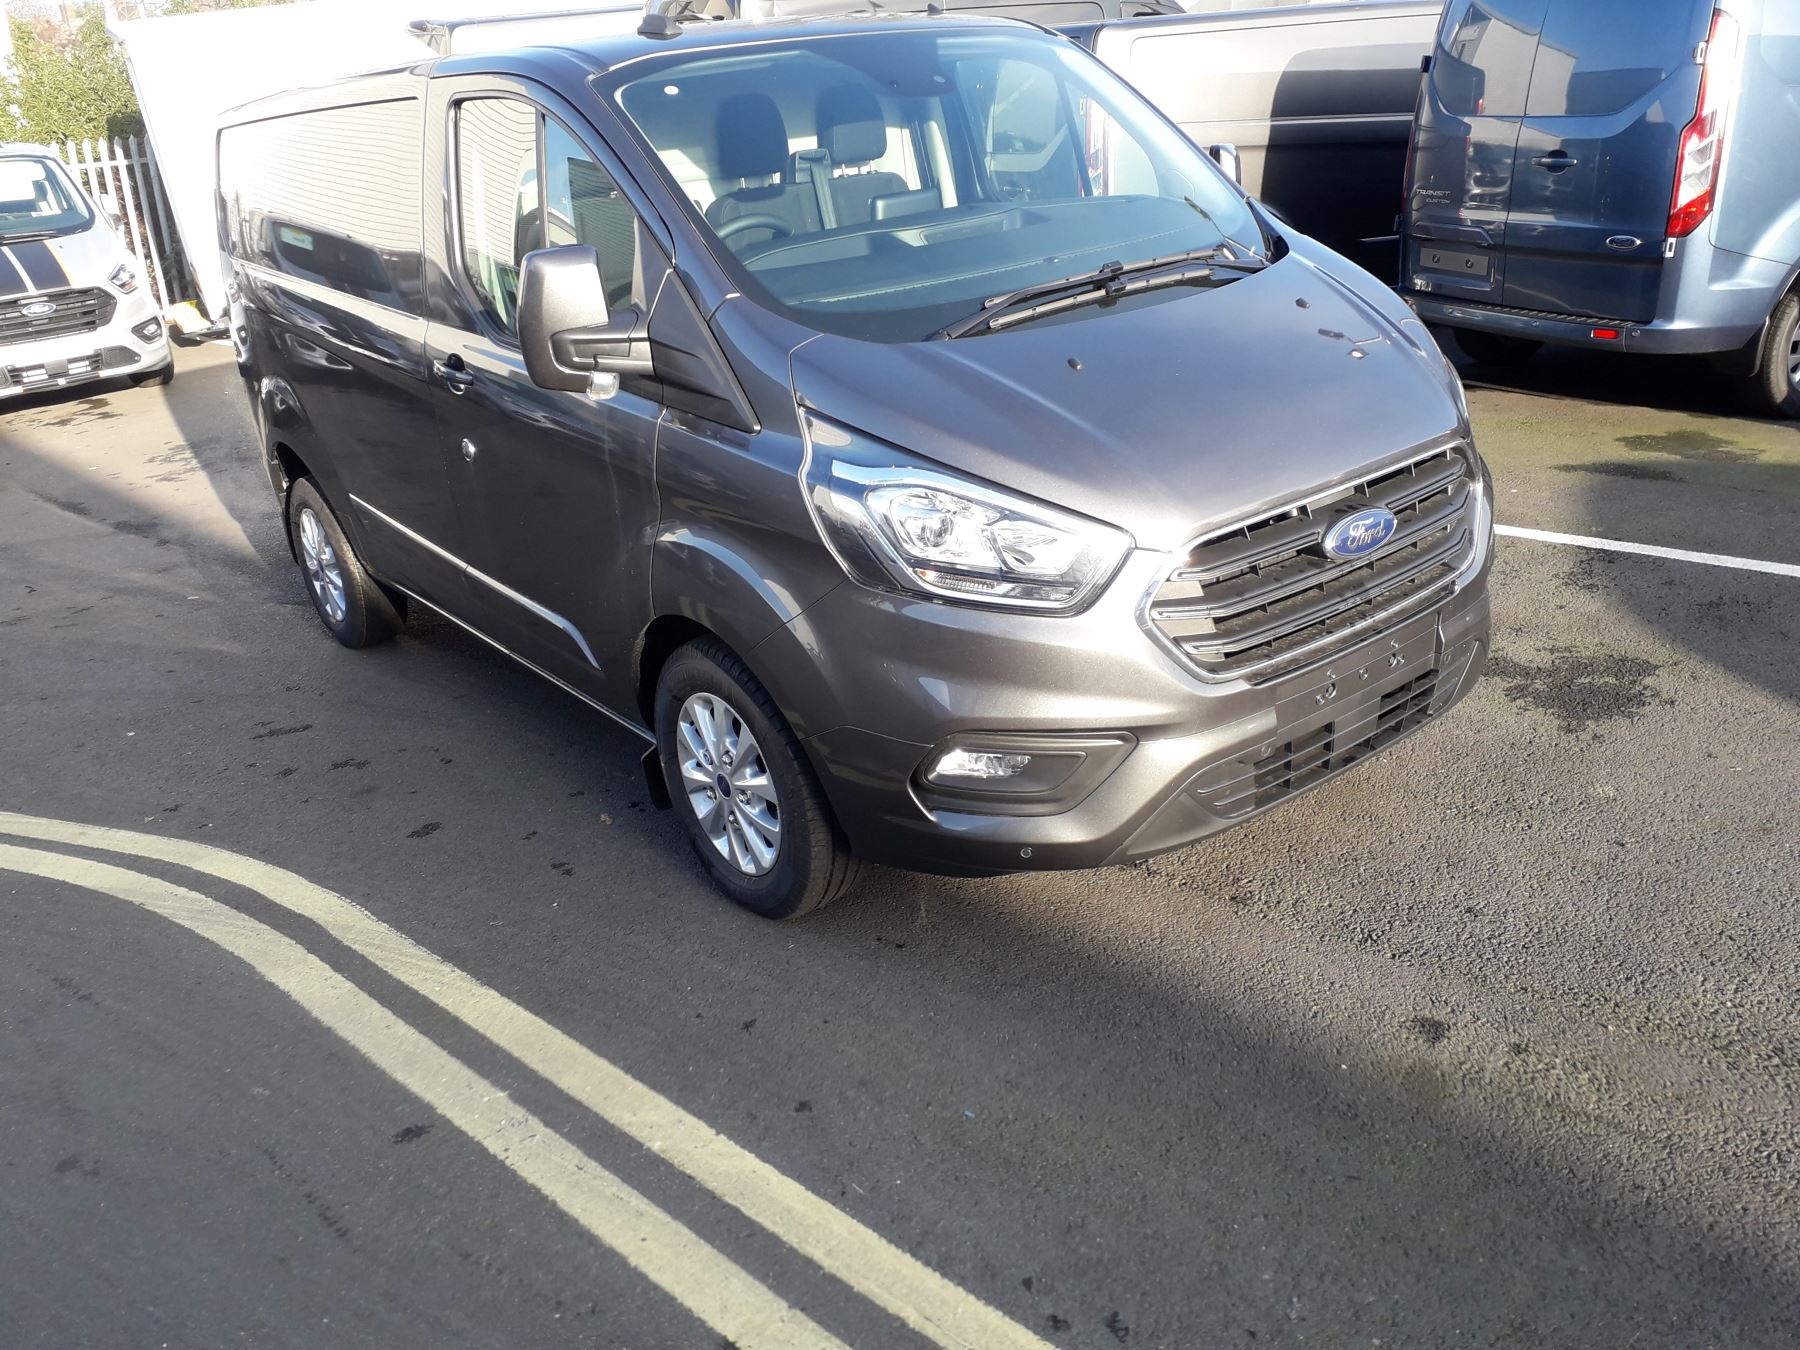 Ford Transit Custom 340 L1 Limited PHEV 1.0 Hybrid PLUS VAT Petrol/Electric Automatic 5 door (2021)